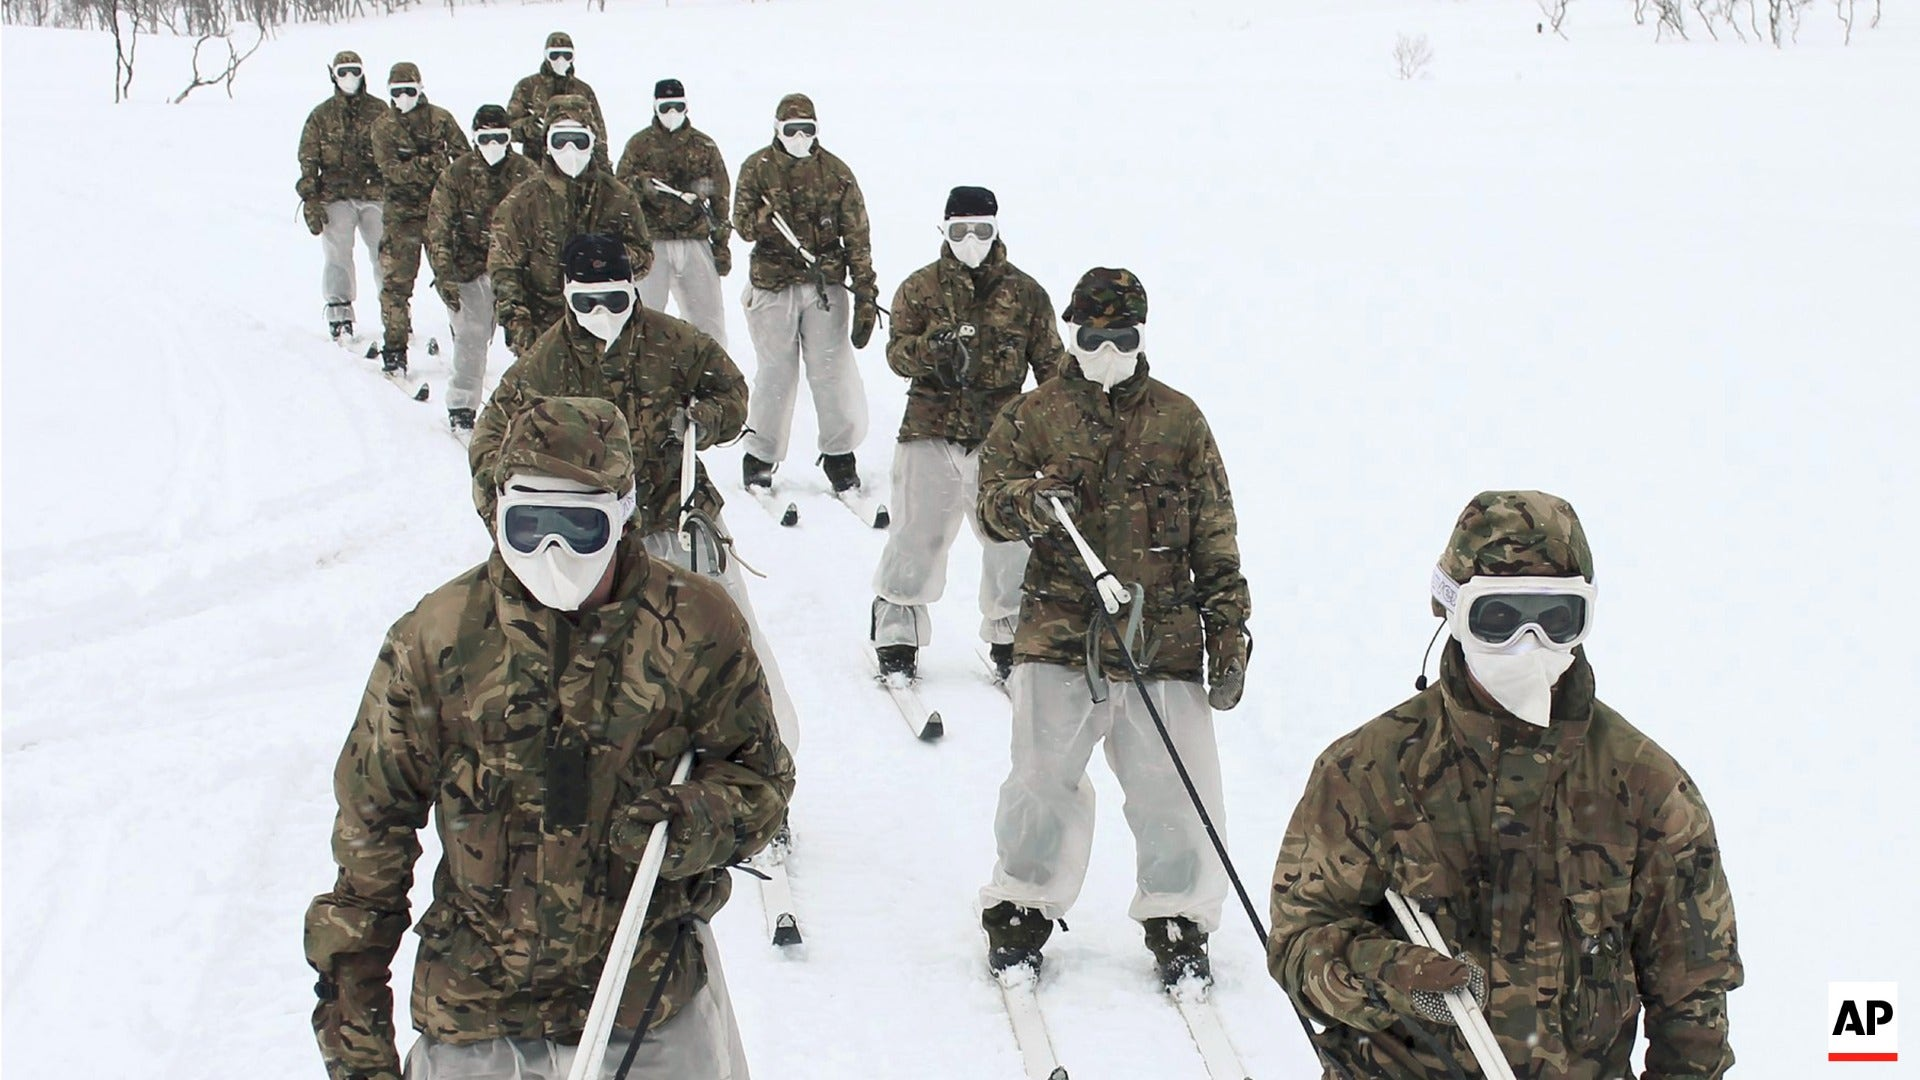 During Arctic training exercises and operations, soldiers typically wear off-the-shelf balaclavas and non-ballistic ski goggles for cold weather protection [Crown Copyright]